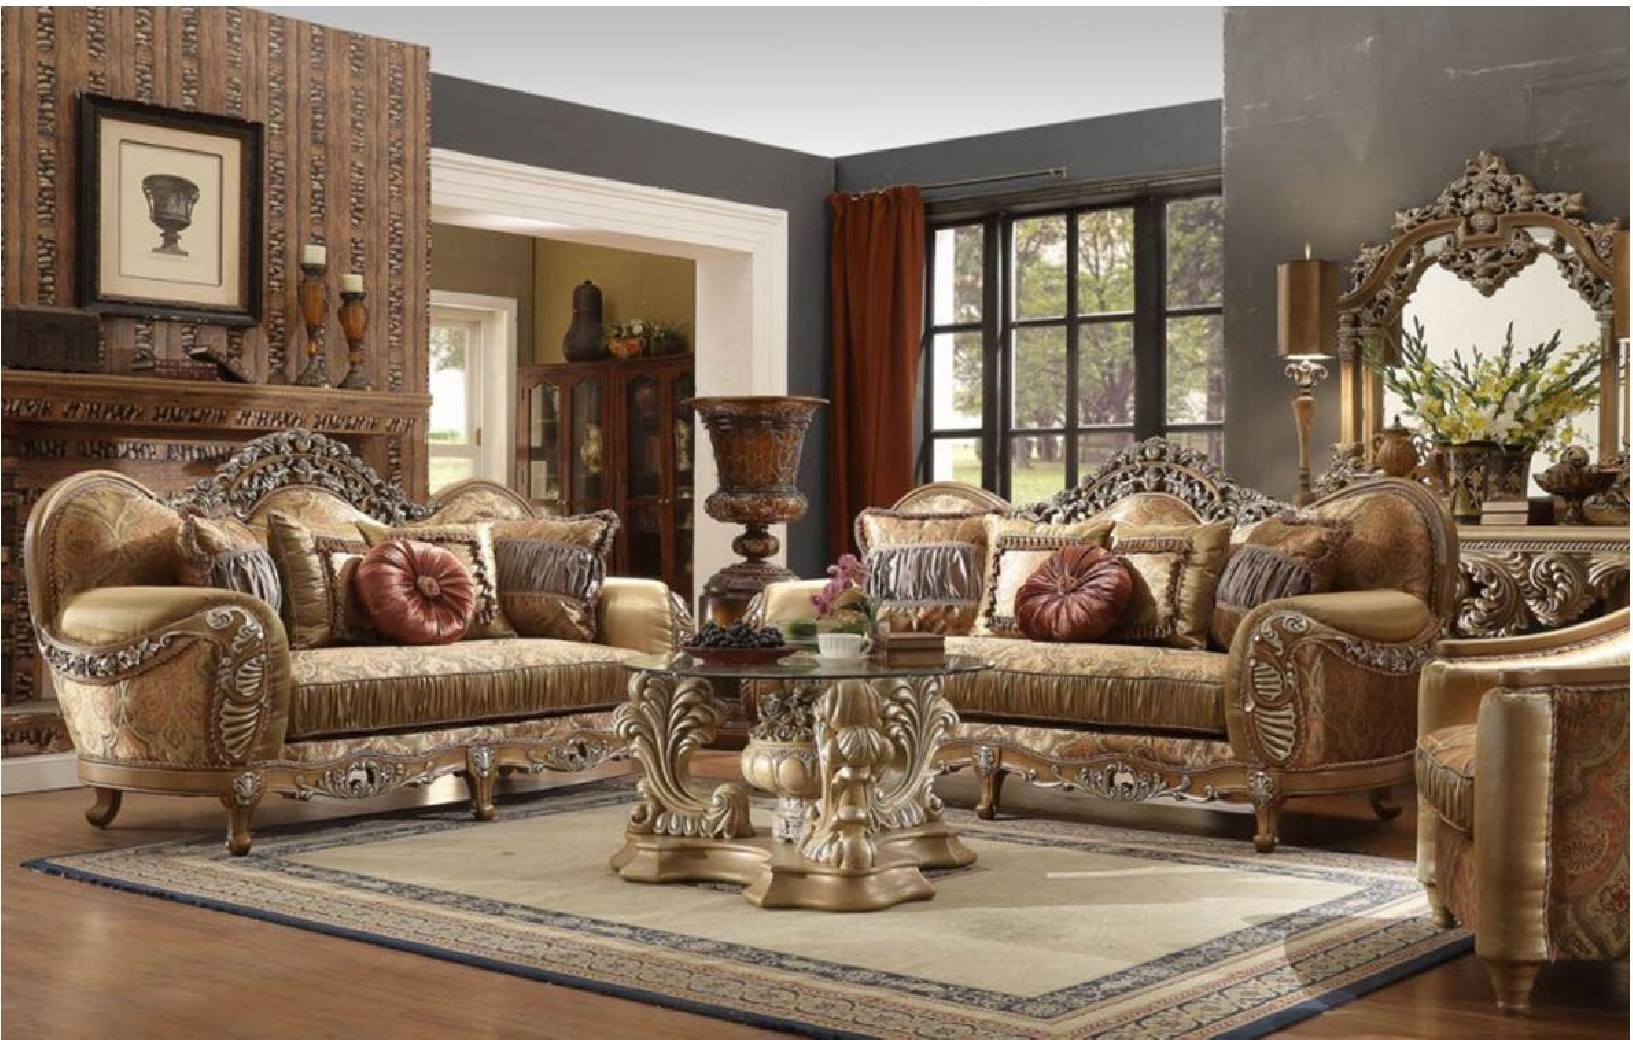 Exceptionnel HD 622 Homey Design Upholstery Living Room Set Victorian, European U0026  Classic Design Sofa Set